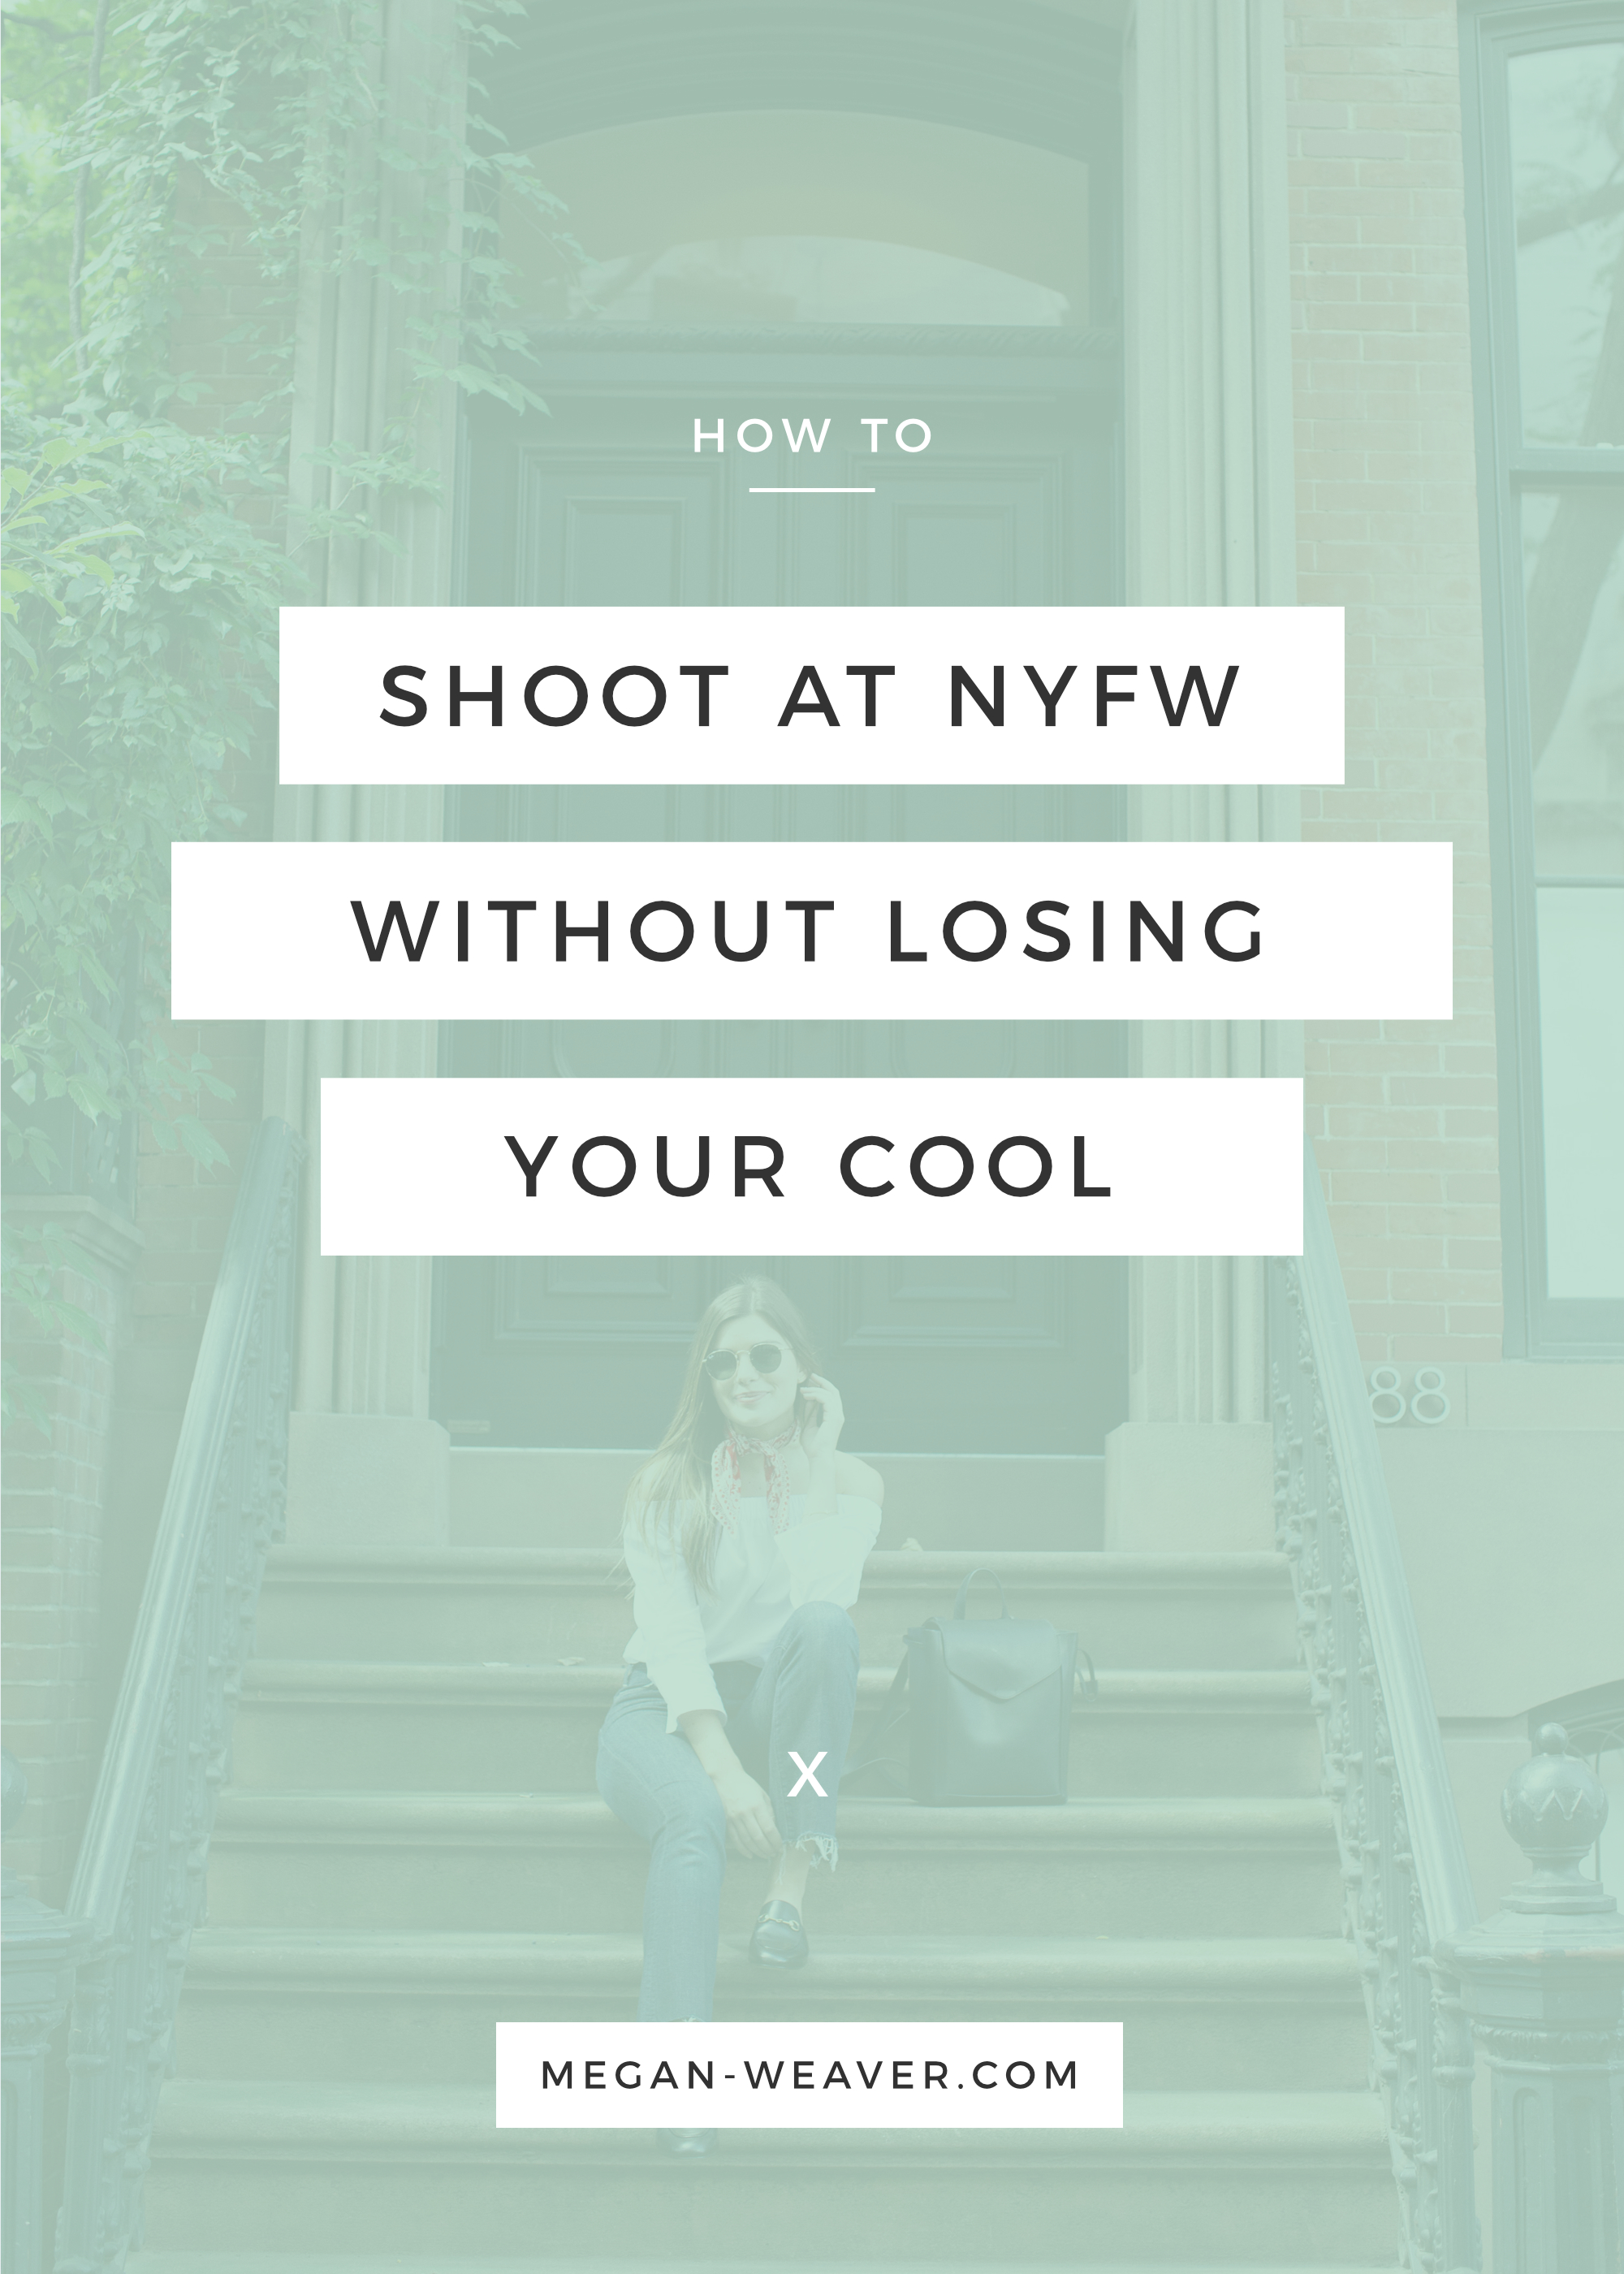 Do you dream of shooting at New York Fashion Week? In this tutorial, I'll let you in on my secrets to keeping your cool as a first-time NYFW photographer.